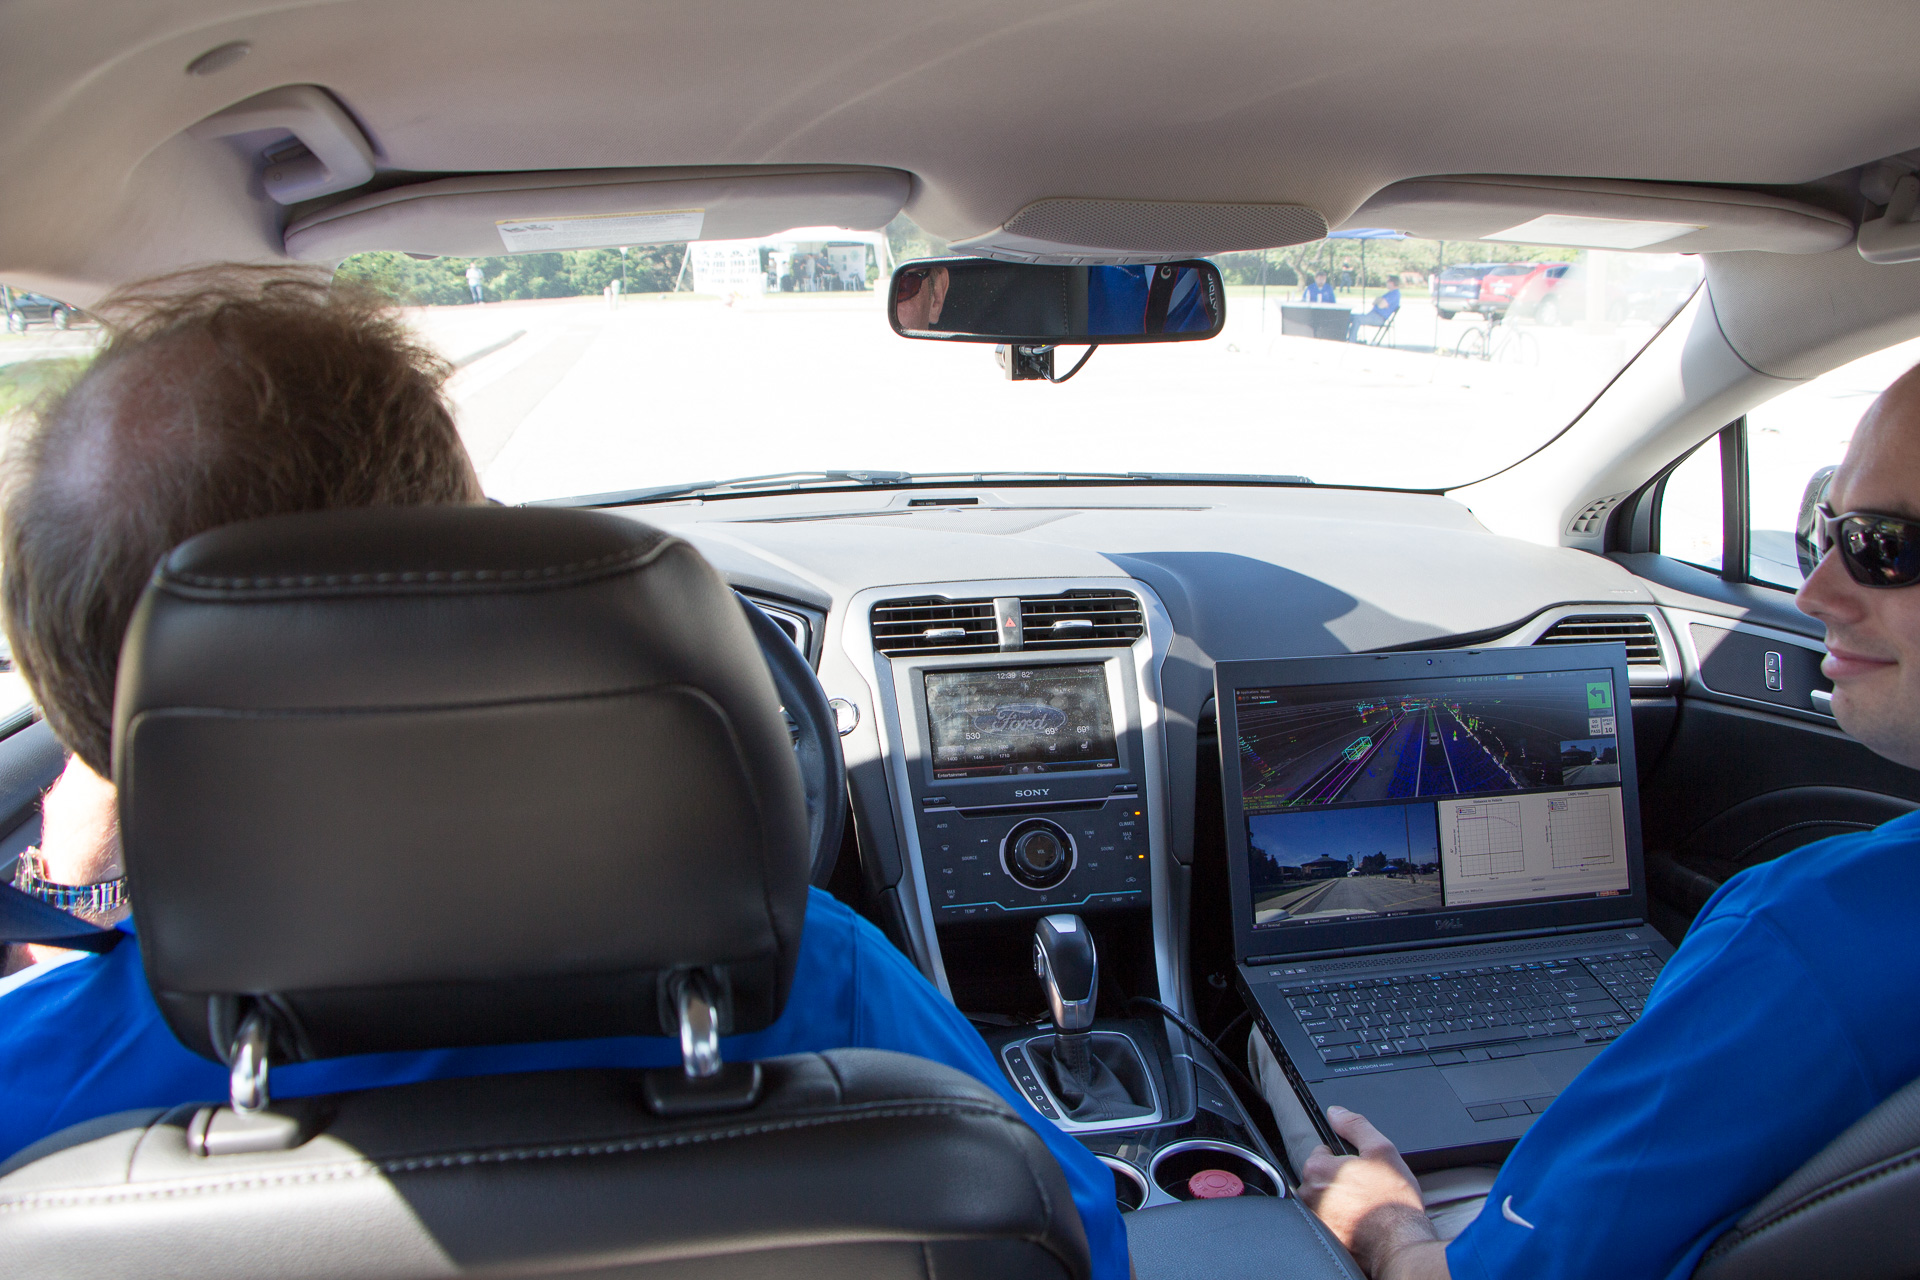 Today, the AV Fusion requires a driver to be ready, and an engineer monitoring the sensors on his laptop.